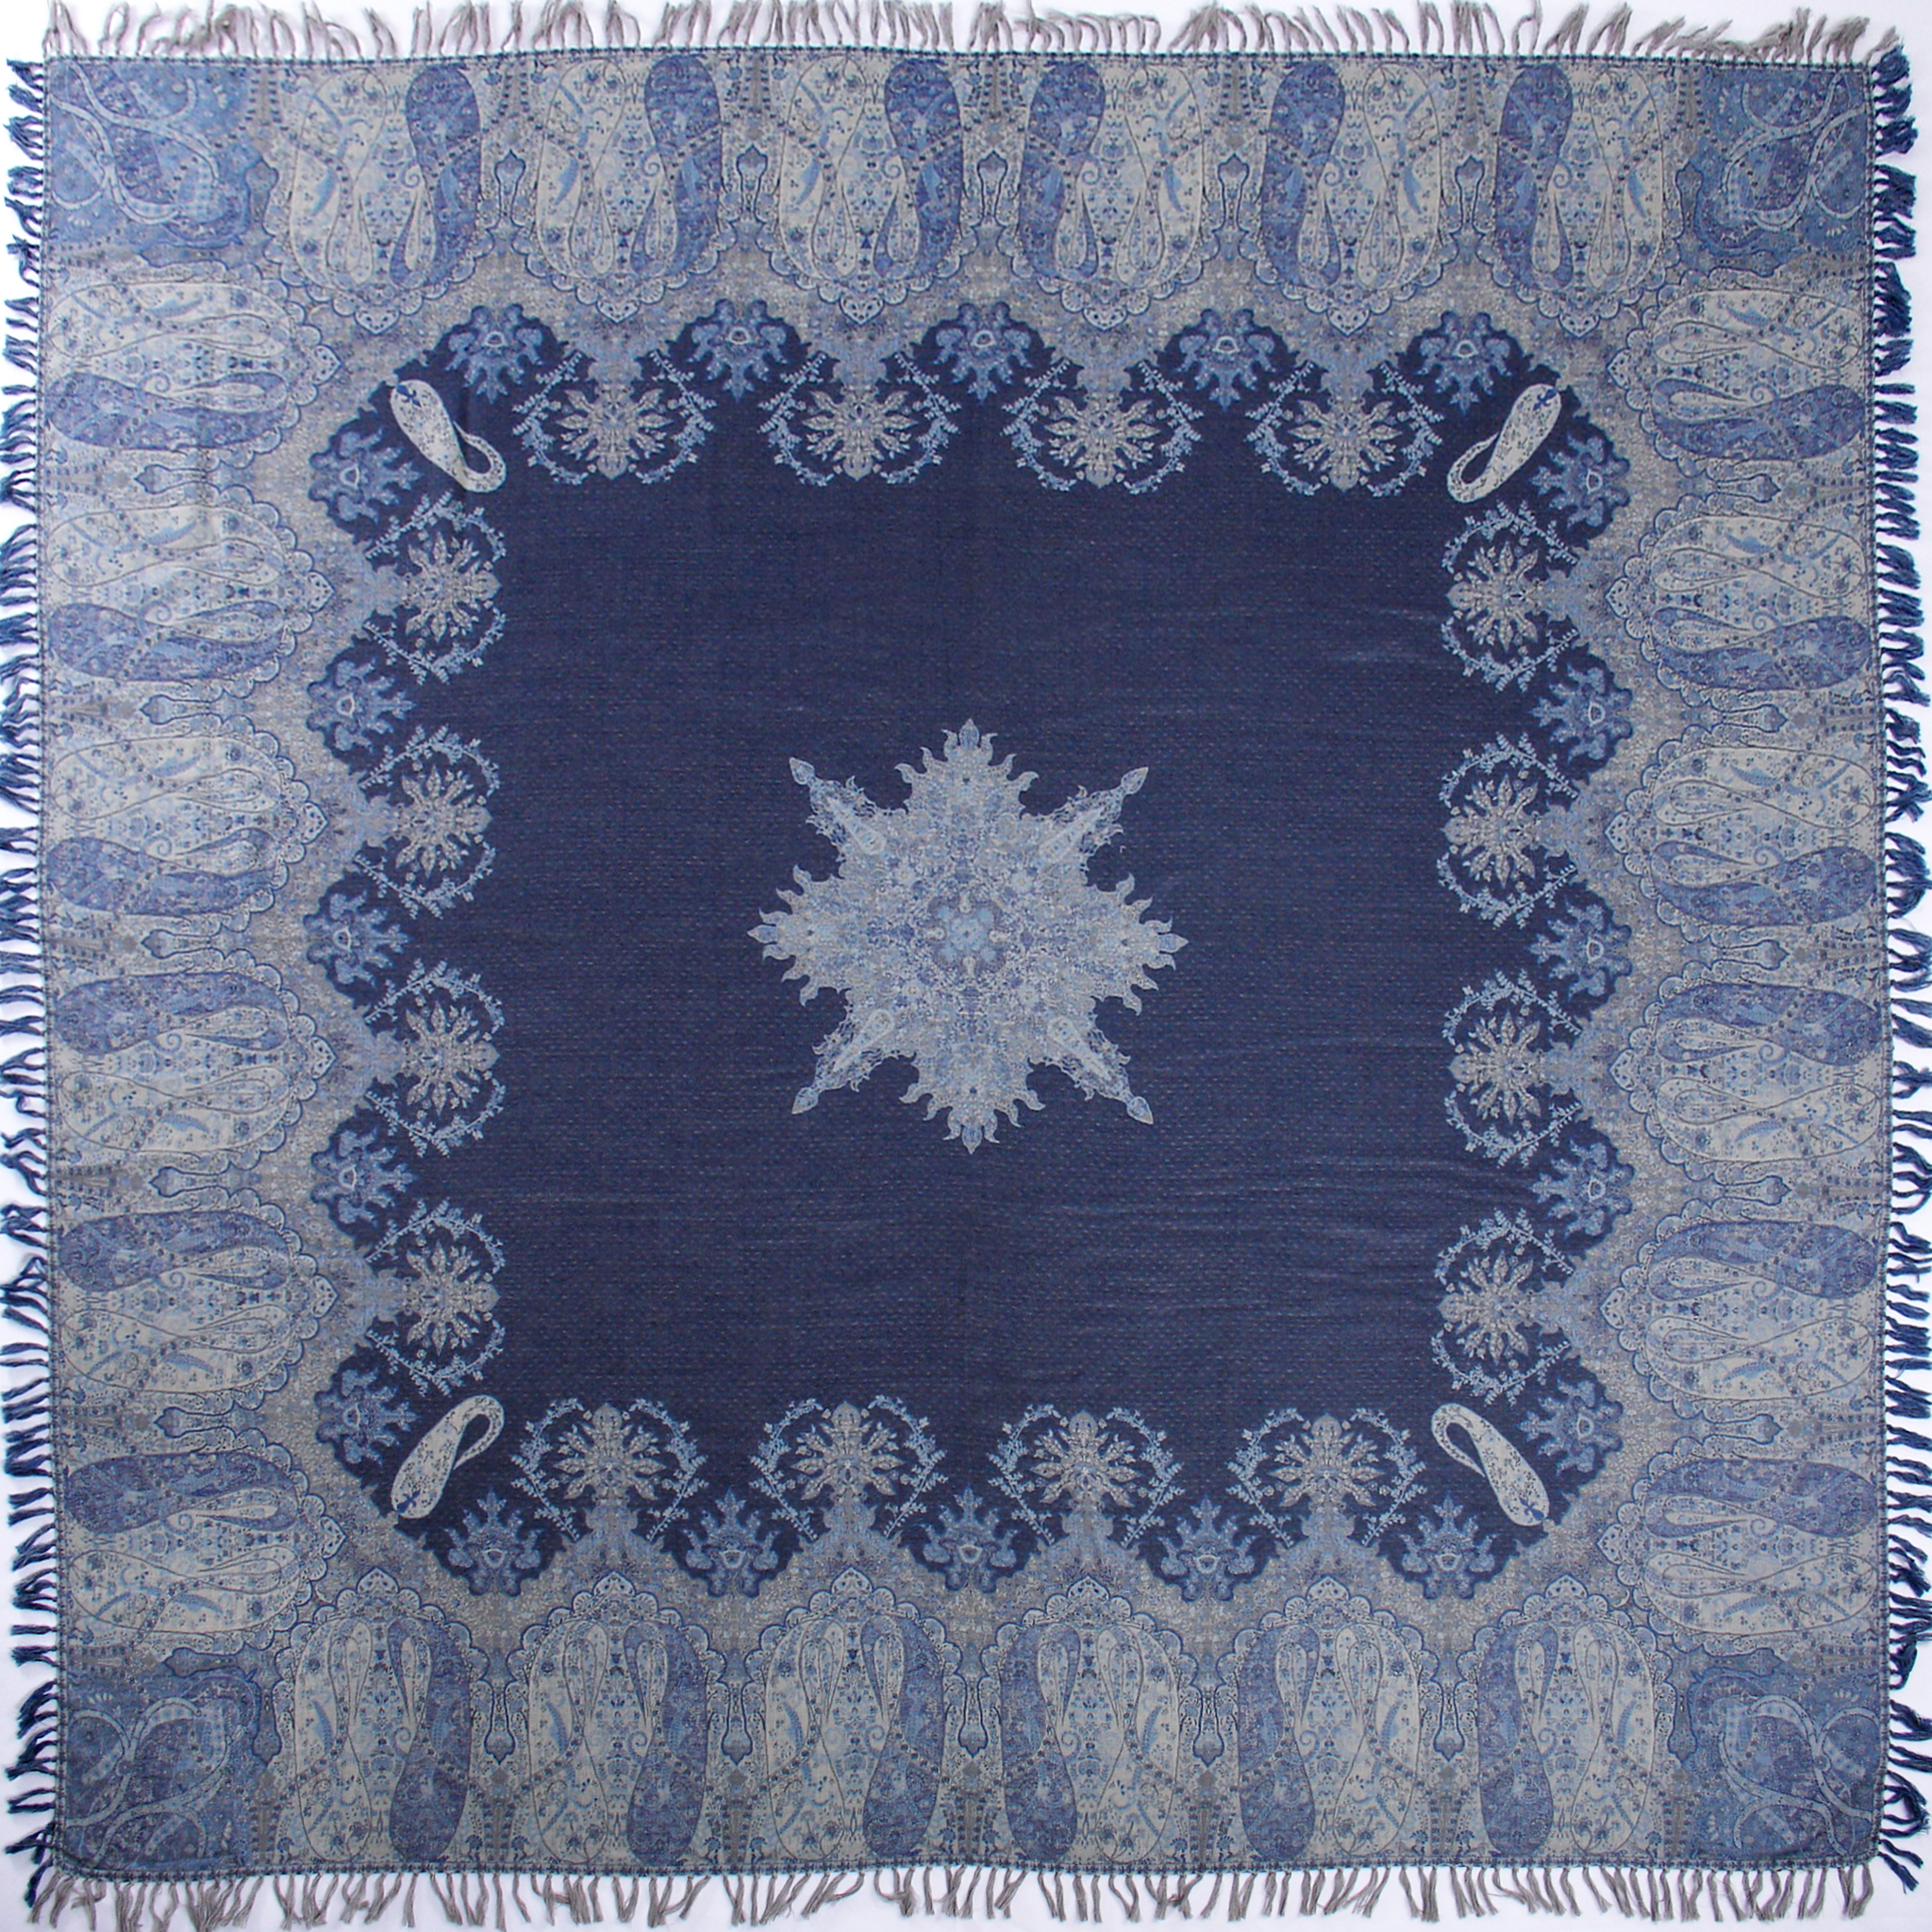 Lillie Blue & Gray Bed Spread front.JPG